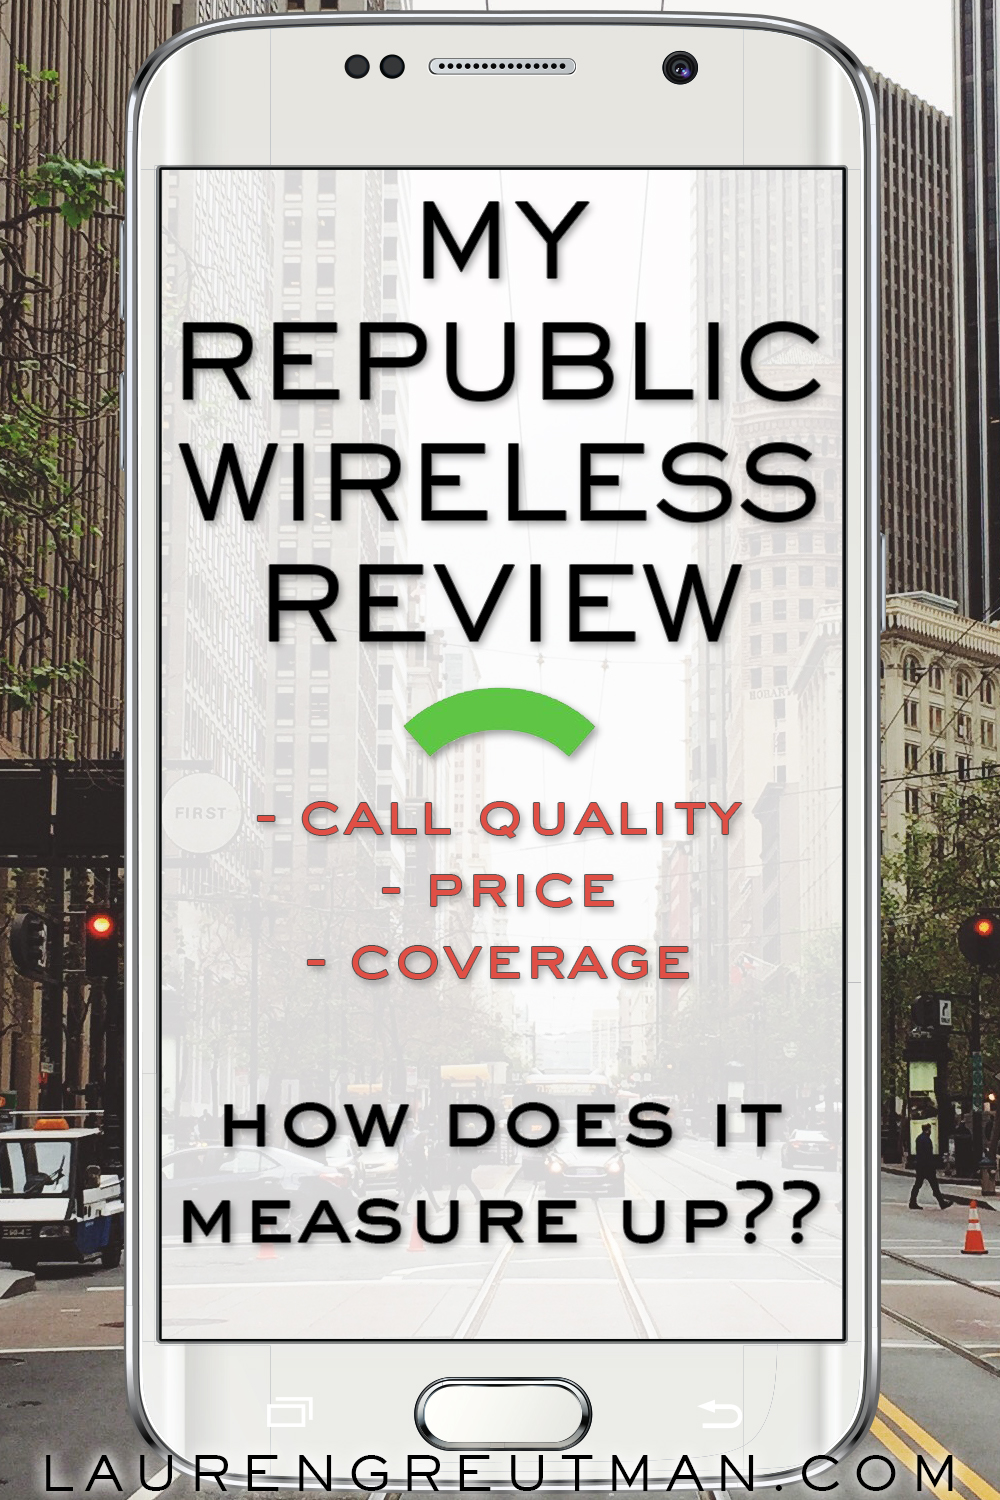 Are you wondering what Republic Wireless is all about? Here is my detailed Republic Wireless Review including what I like and don't like about it.